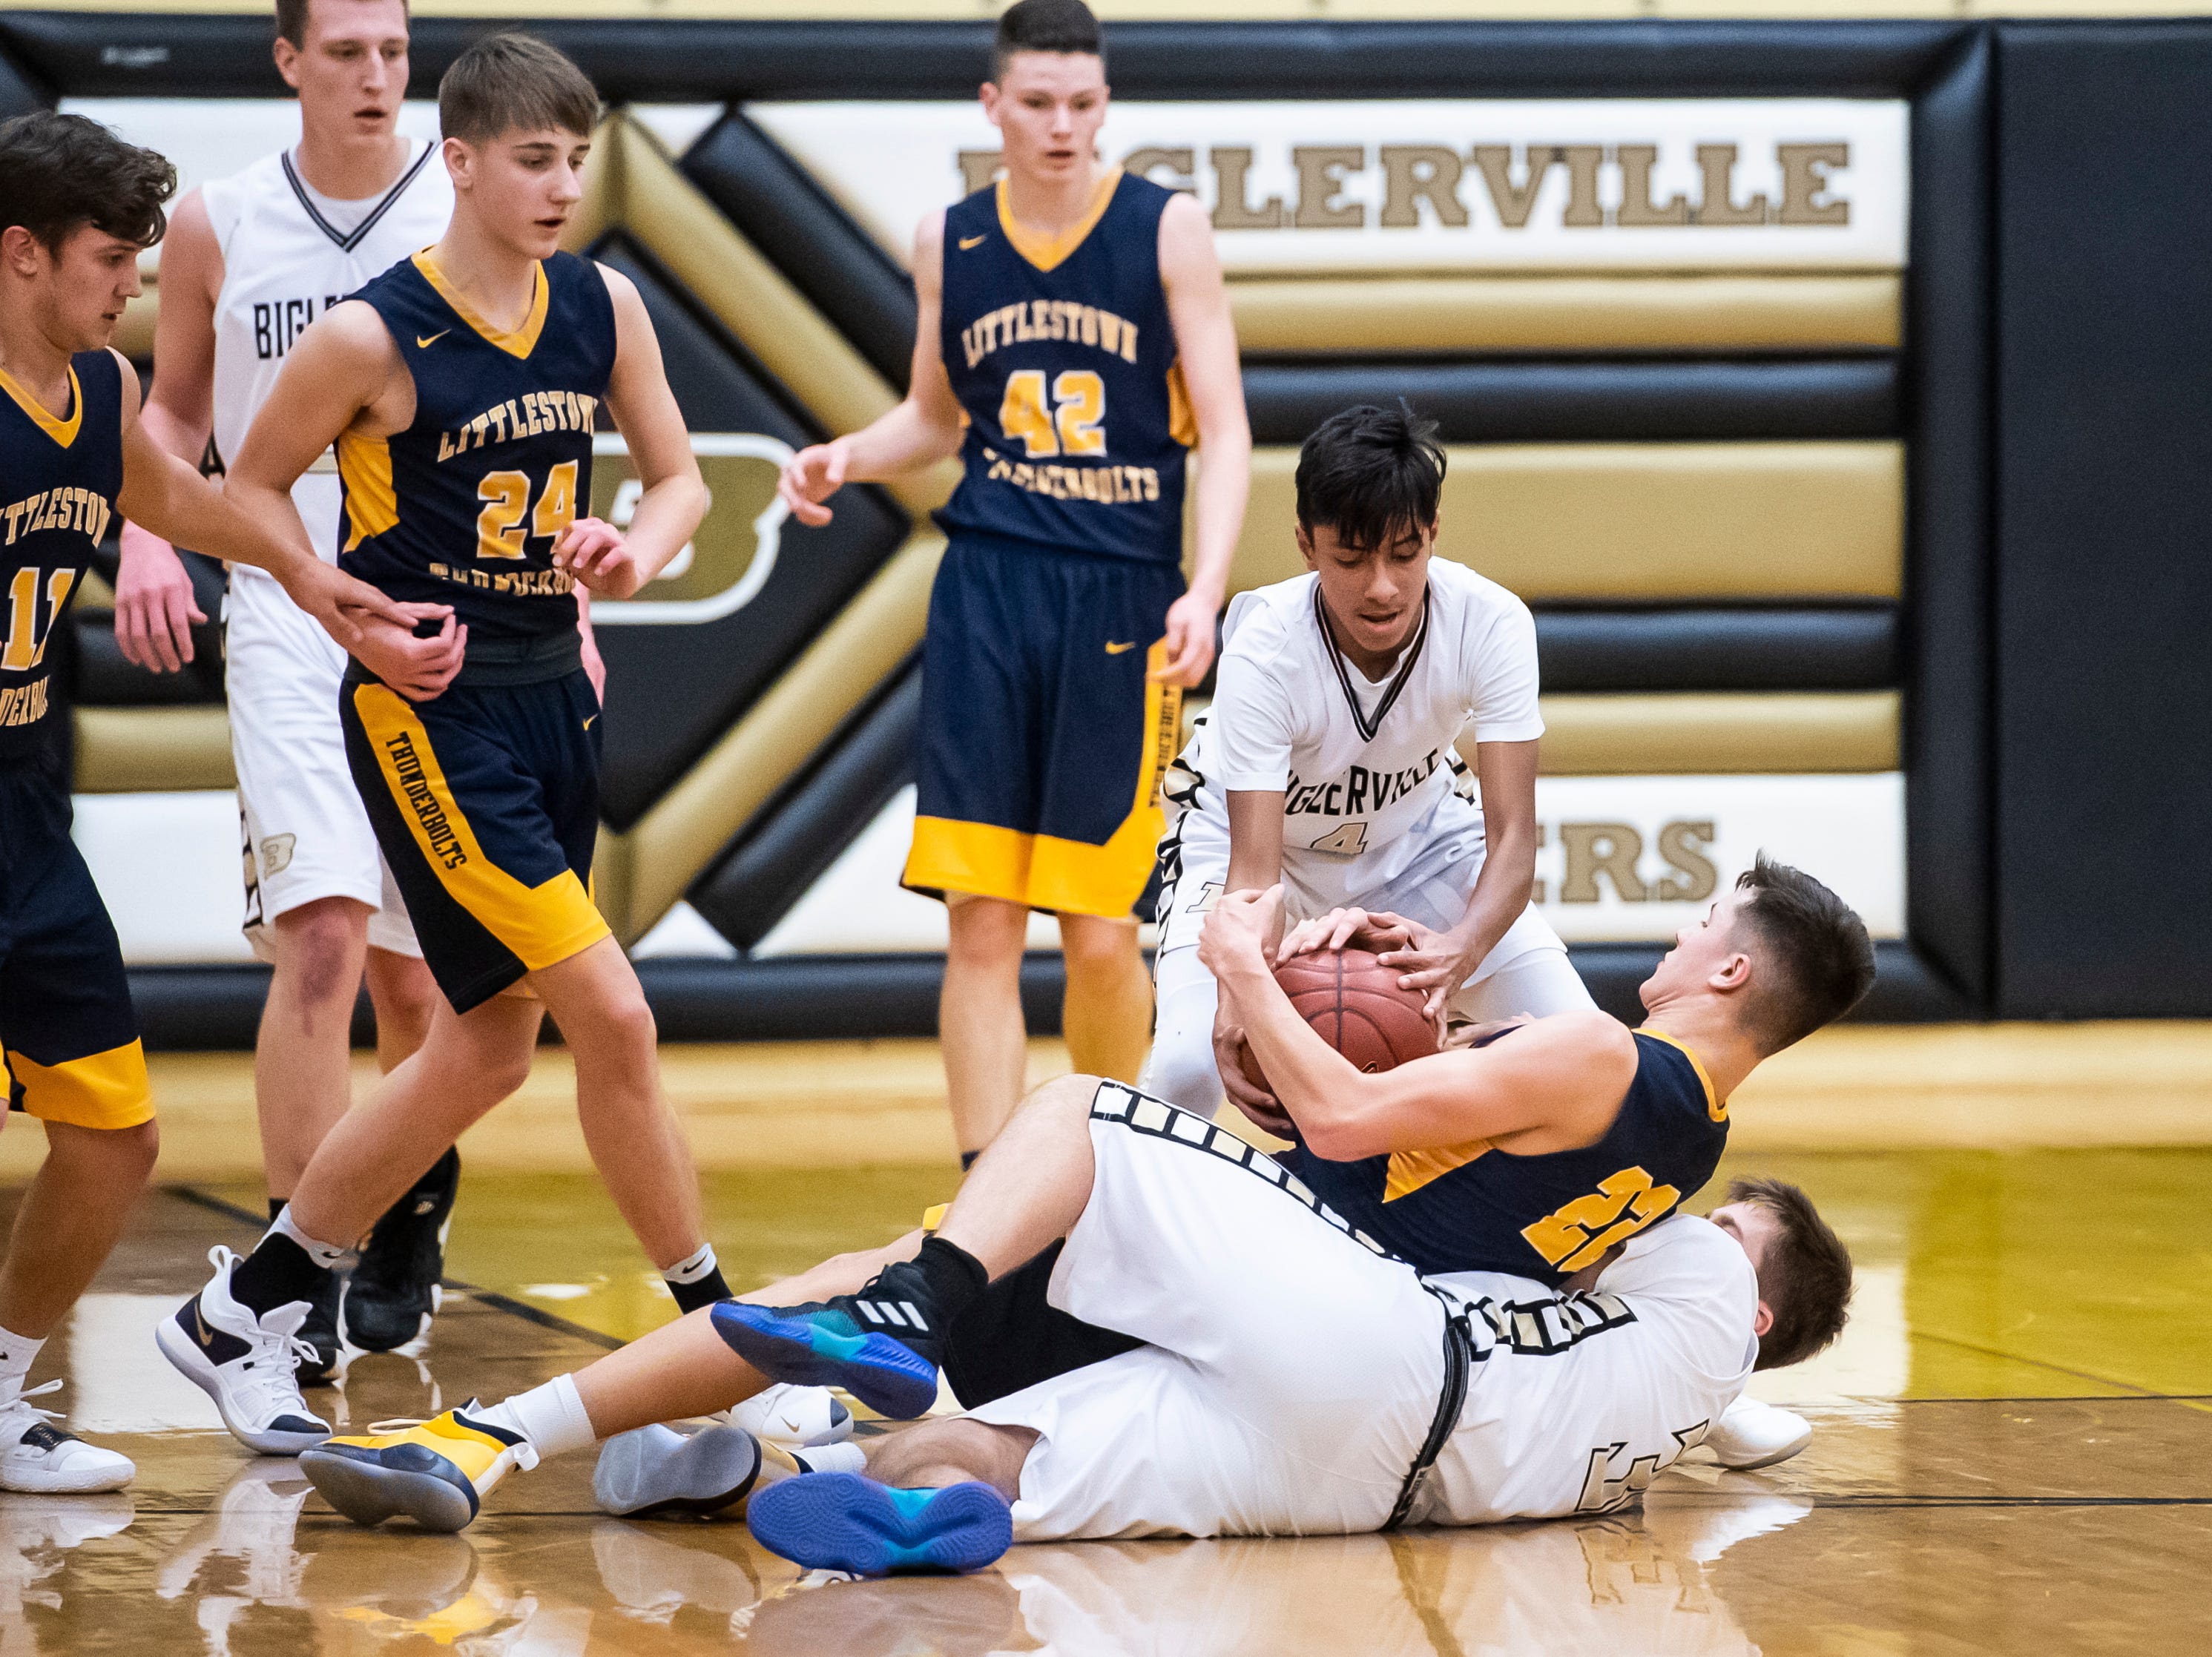 Littlestown's Logan Collins (22) maintains possession as Biglerville's Jorge Cervantes tries to take the ball on Friday, January 11, 2019. The Bolts won 65-38.